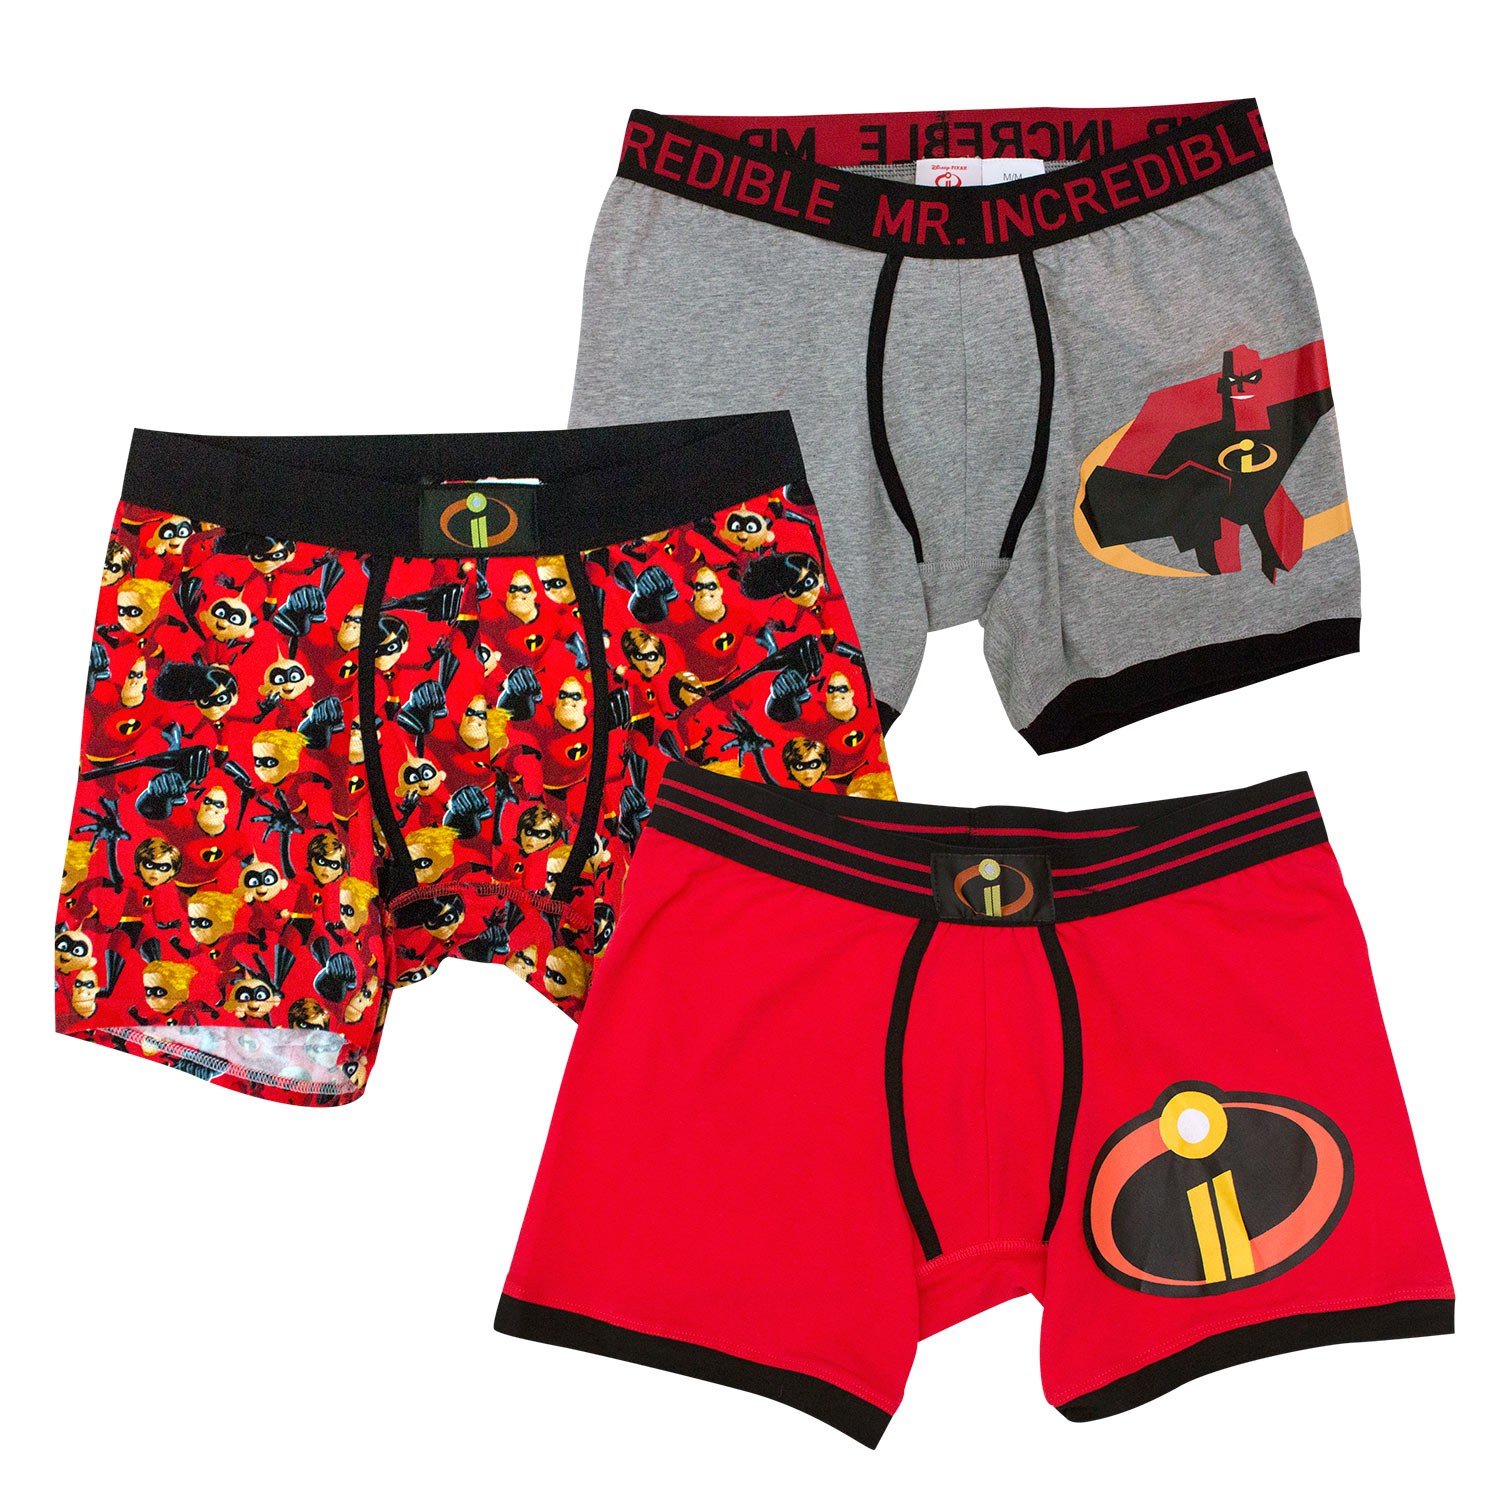 The Incredibles 2 Mr. Incredible Boxer Brief Set of 3